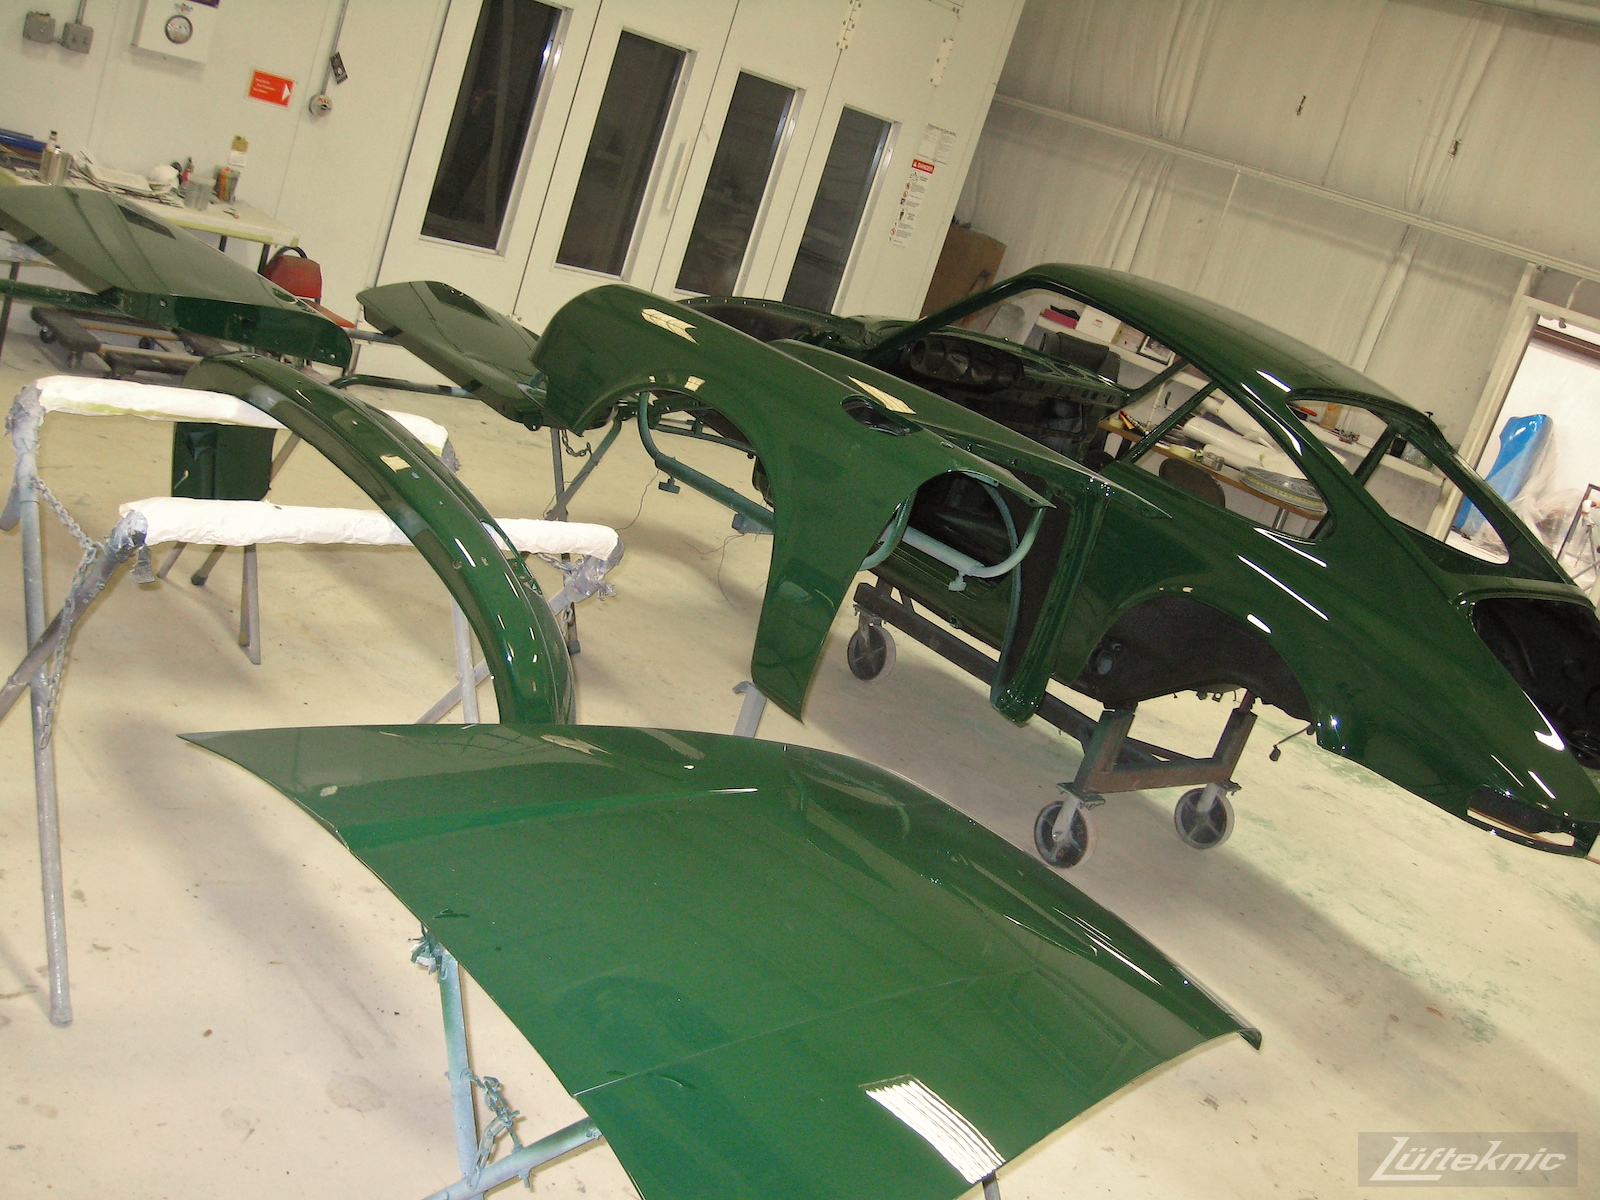 Freshly painted body panels and shell of an Irish Green Porsche 912 undergoing restoration at Lufteknic.